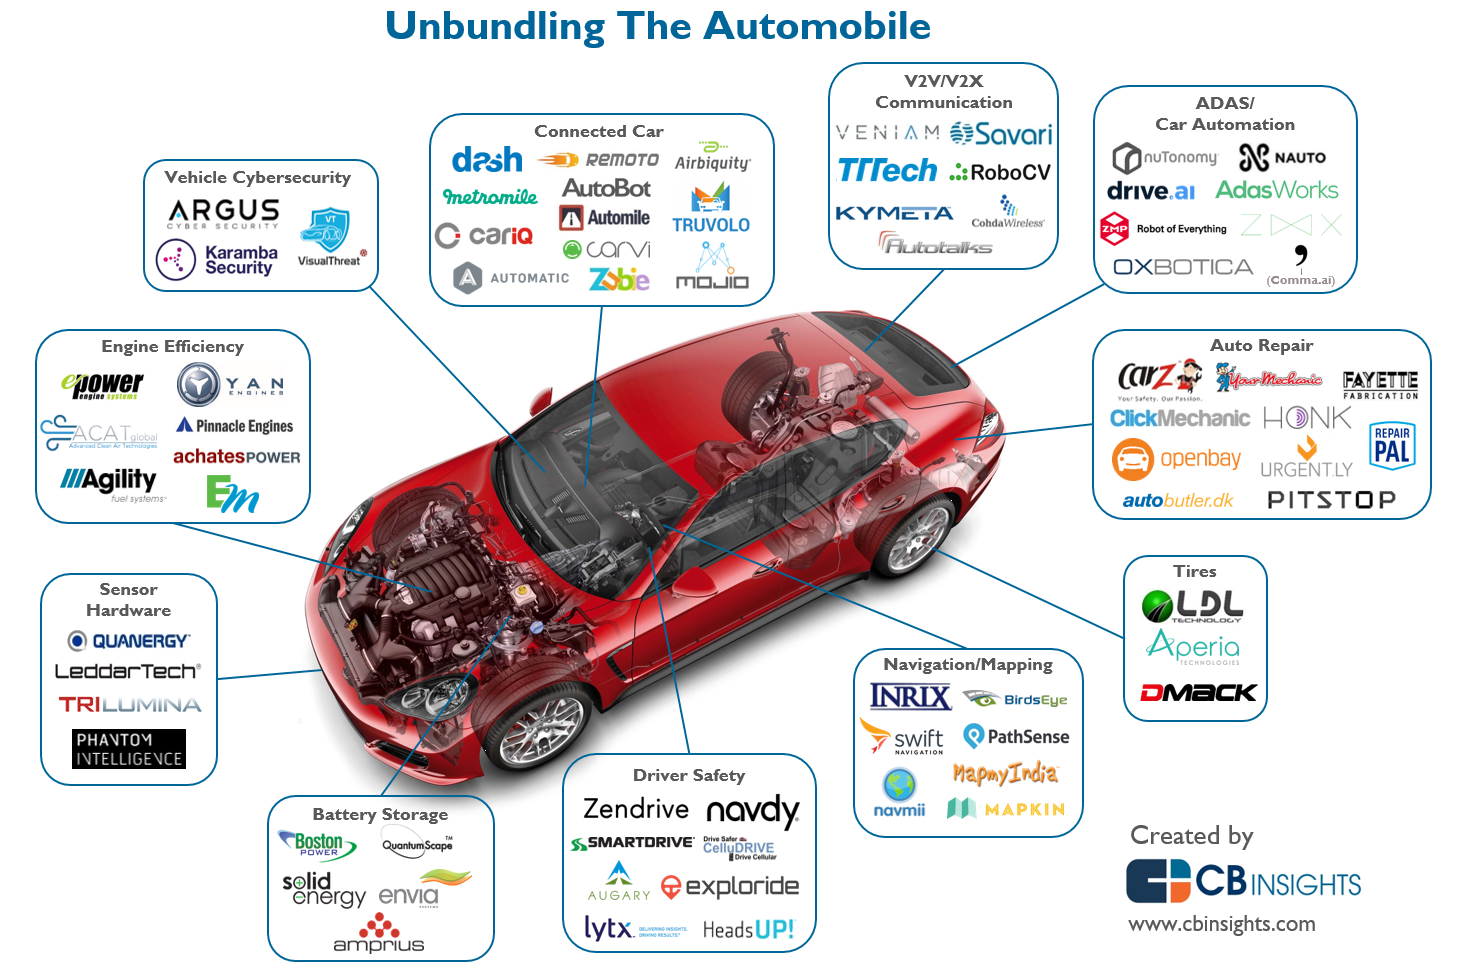 Disrupting The Auto Industry: The Startups That Are Unbundling The Car